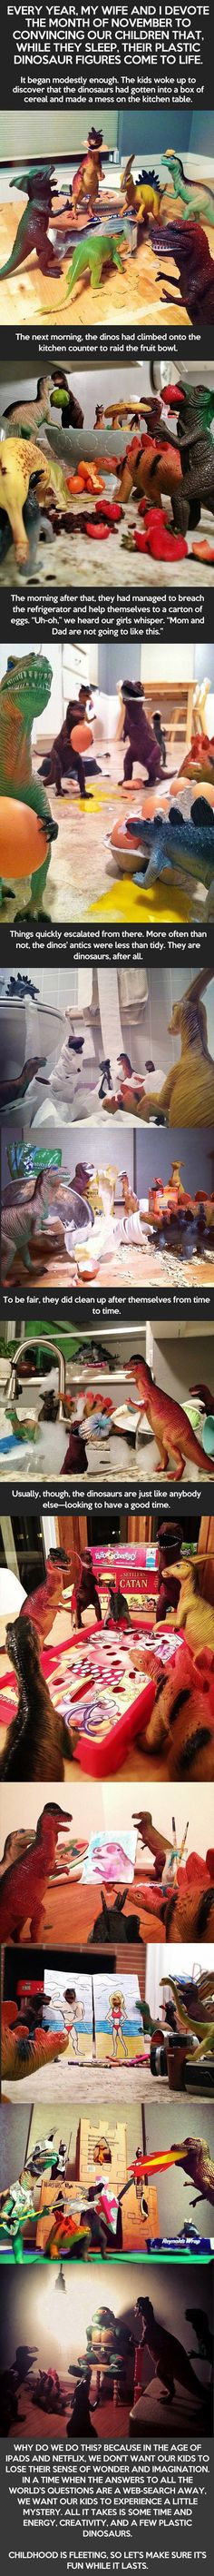 While Their Kids Sleep, These Parents Pull Off This Amazing Stunt: Plastic Dinosaur Figures Come to Life. haha that's fun Haha, Parenting Win, Funny Parenting, Foster Parenting, Single Parenting, Parenting Hacks, Parenting Done Right, Parenting Classes, Parenting Quotes